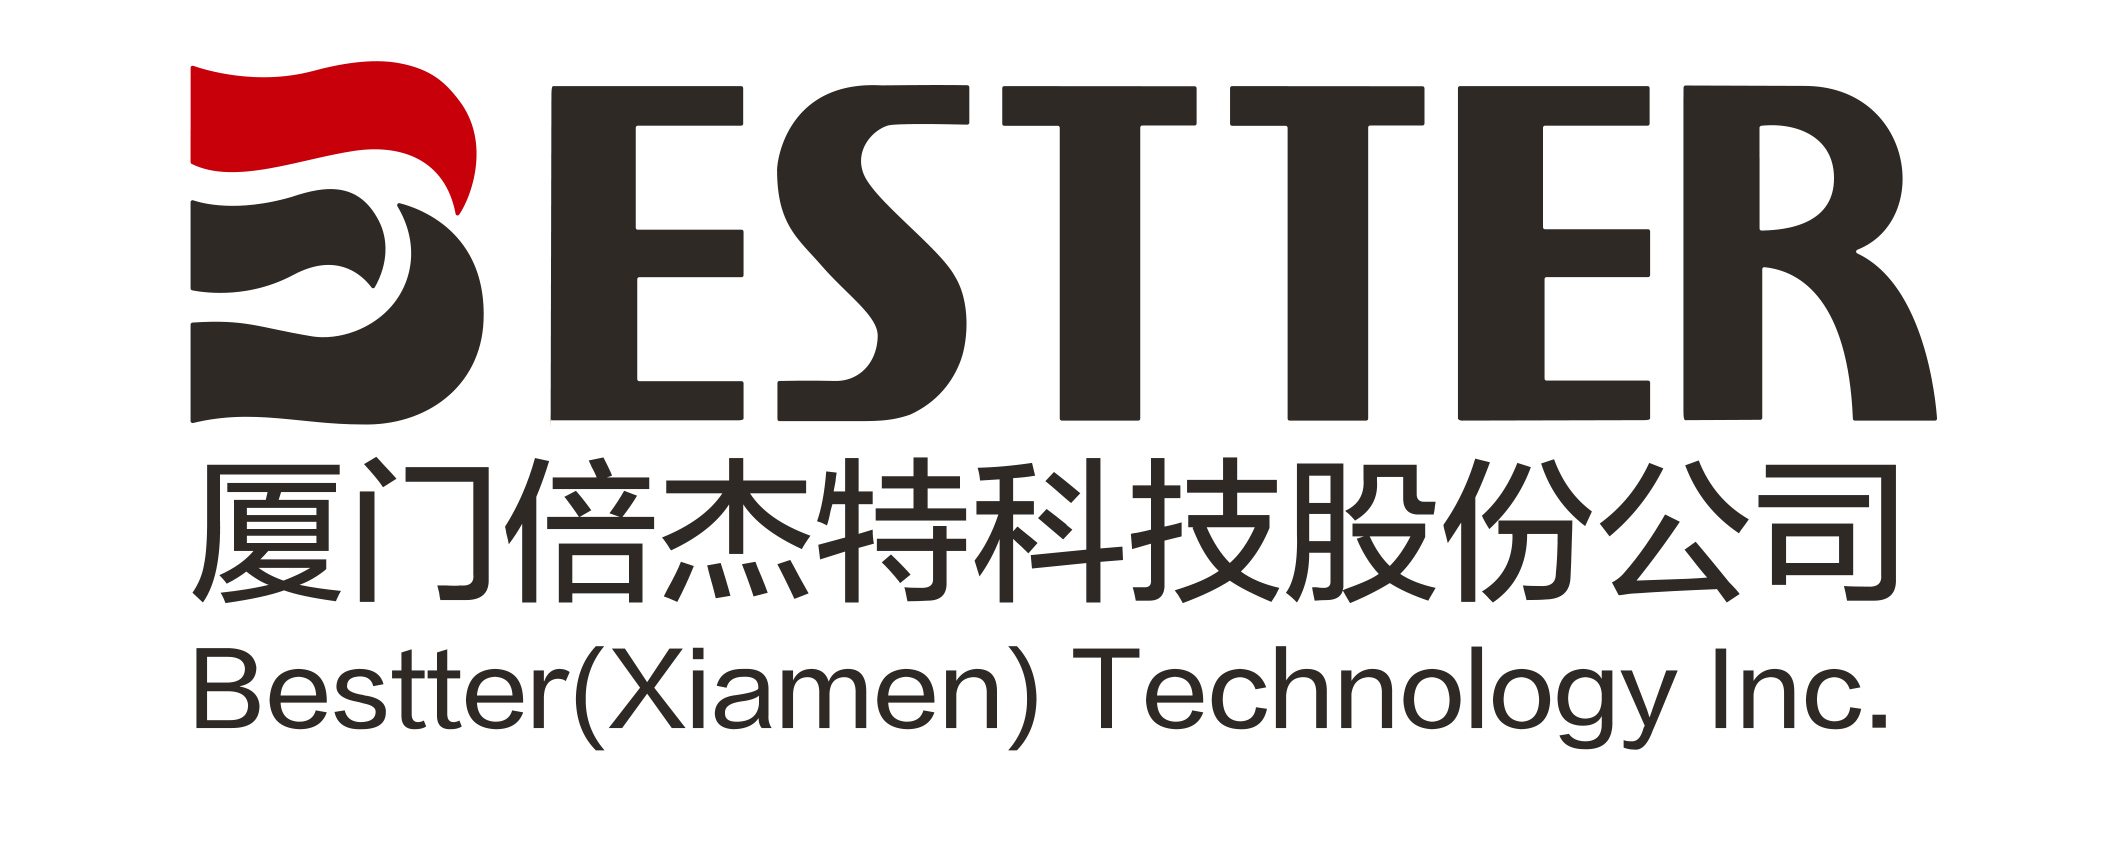 BESTTER (XIAMEN) TECHNOLOGY INC.